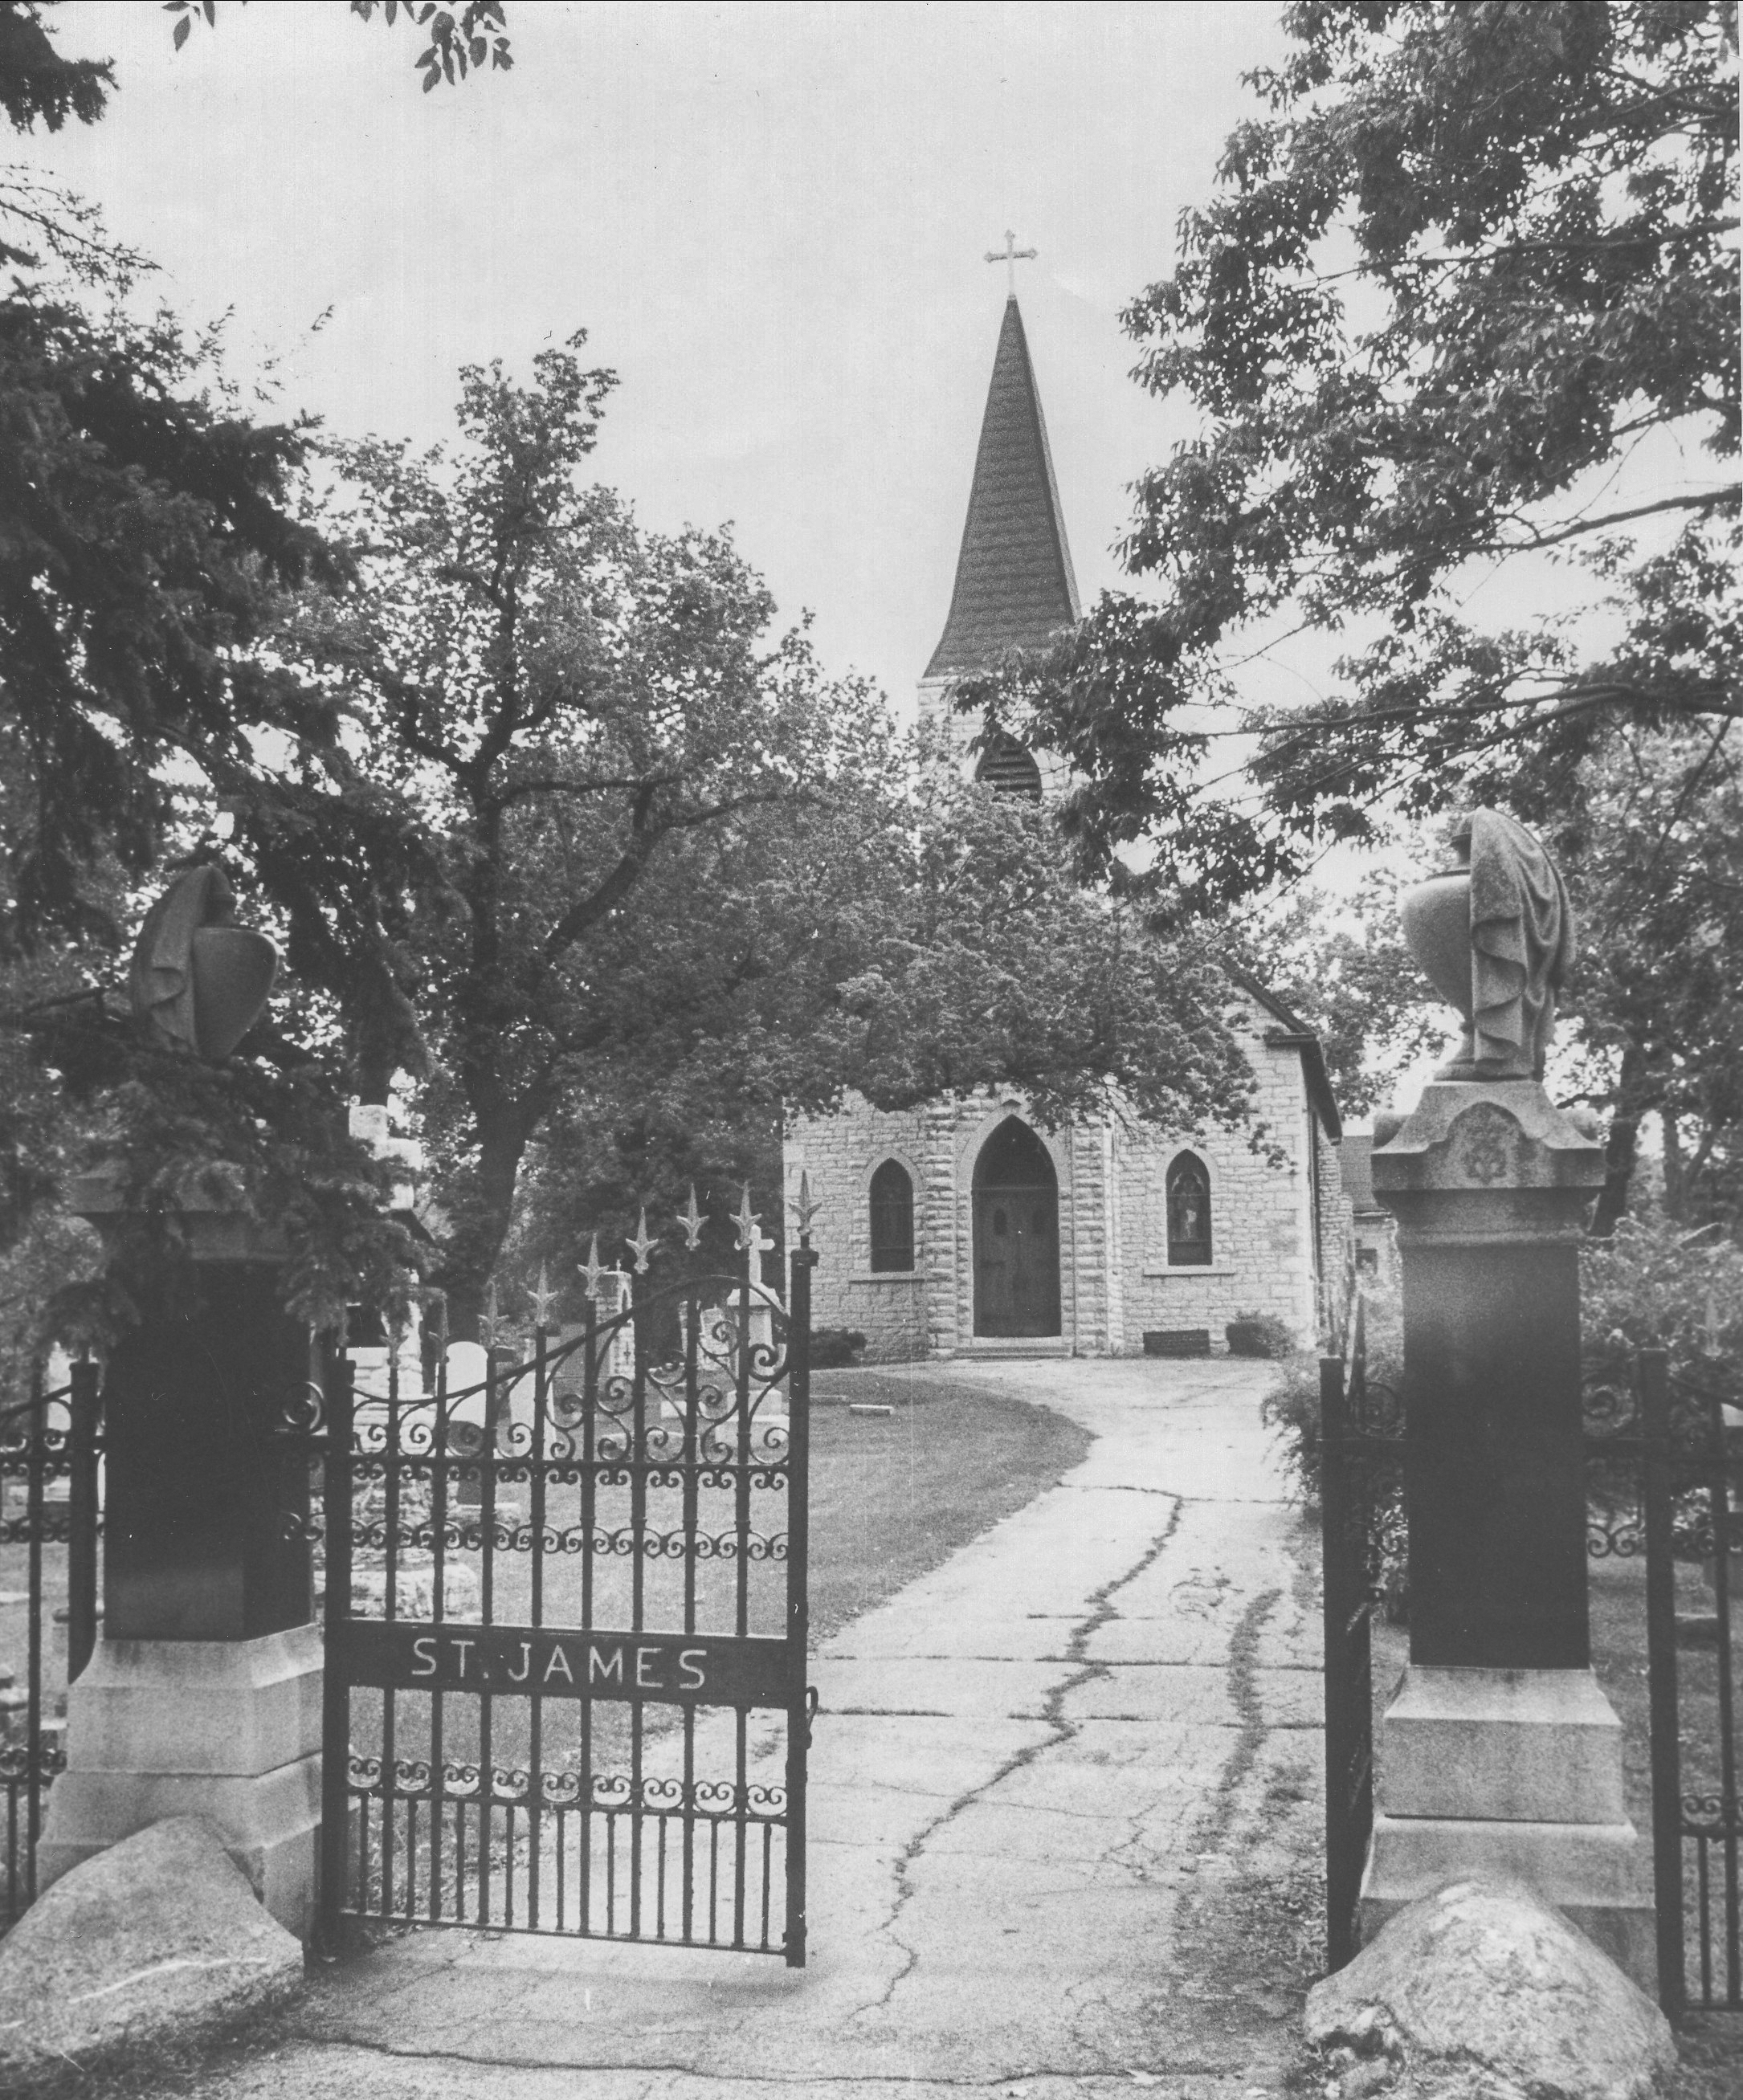 Old picture of gates at St. James Cemetery